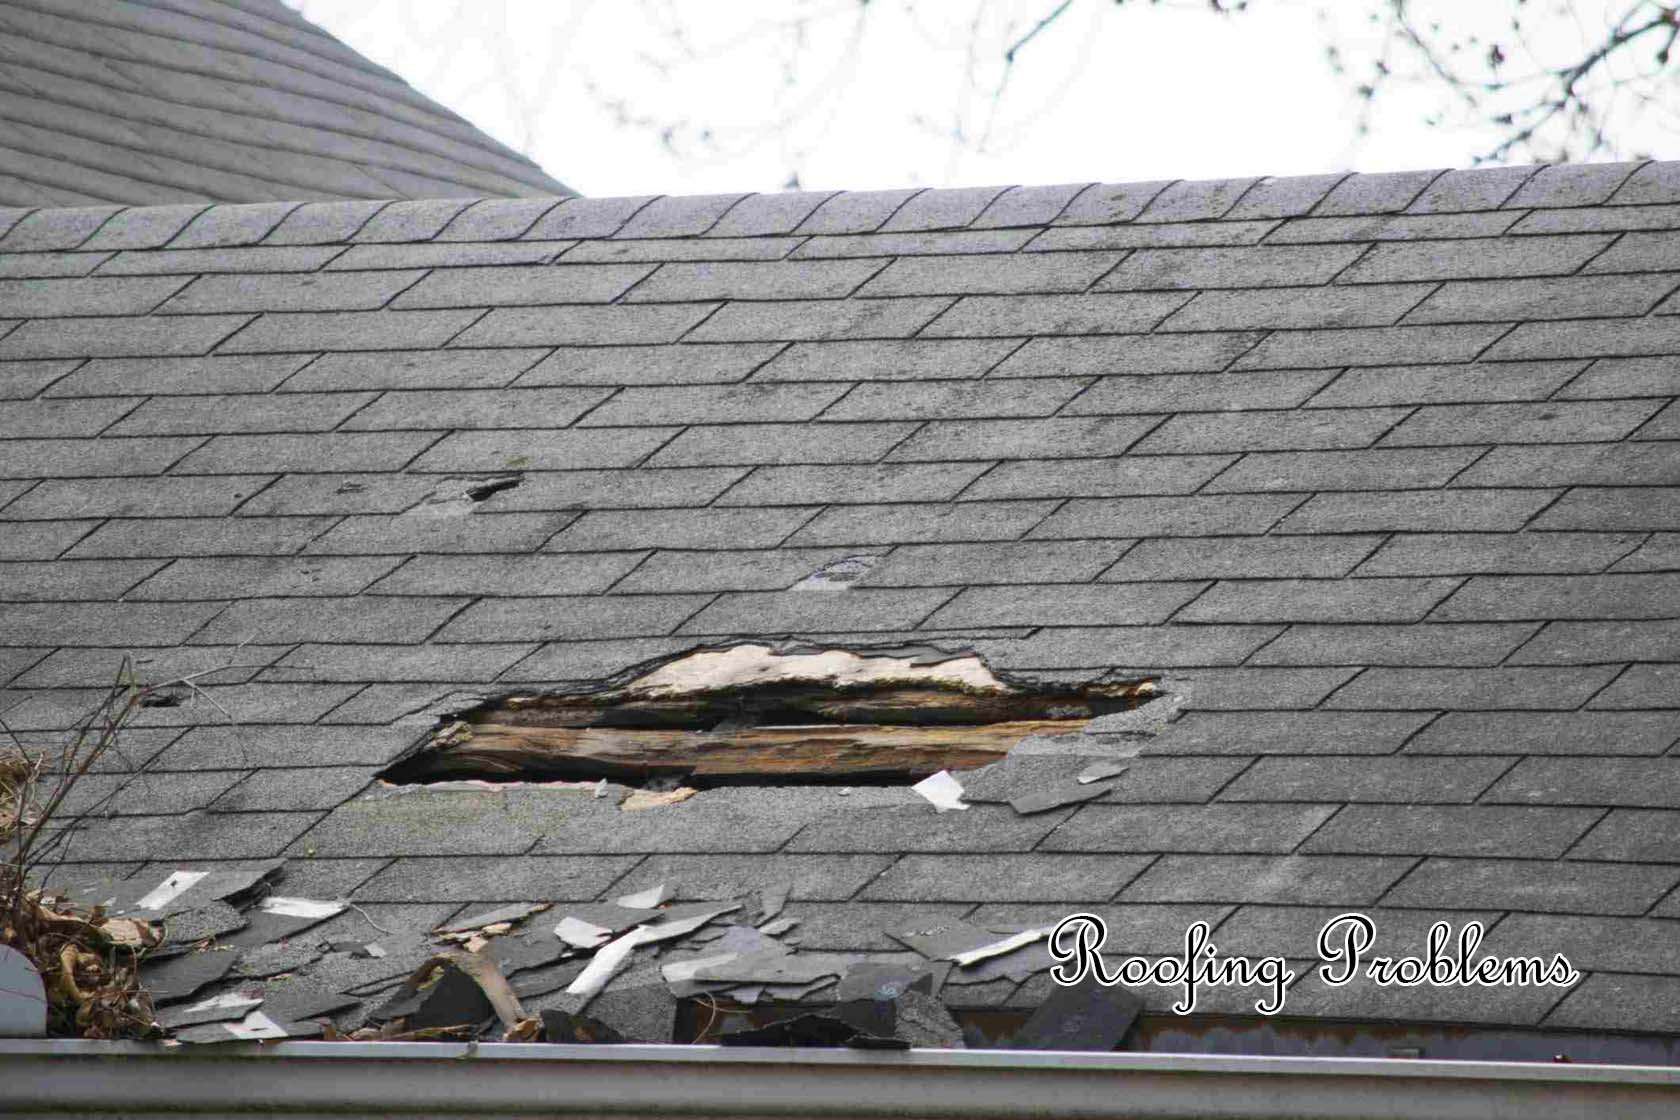 Roofing Problems